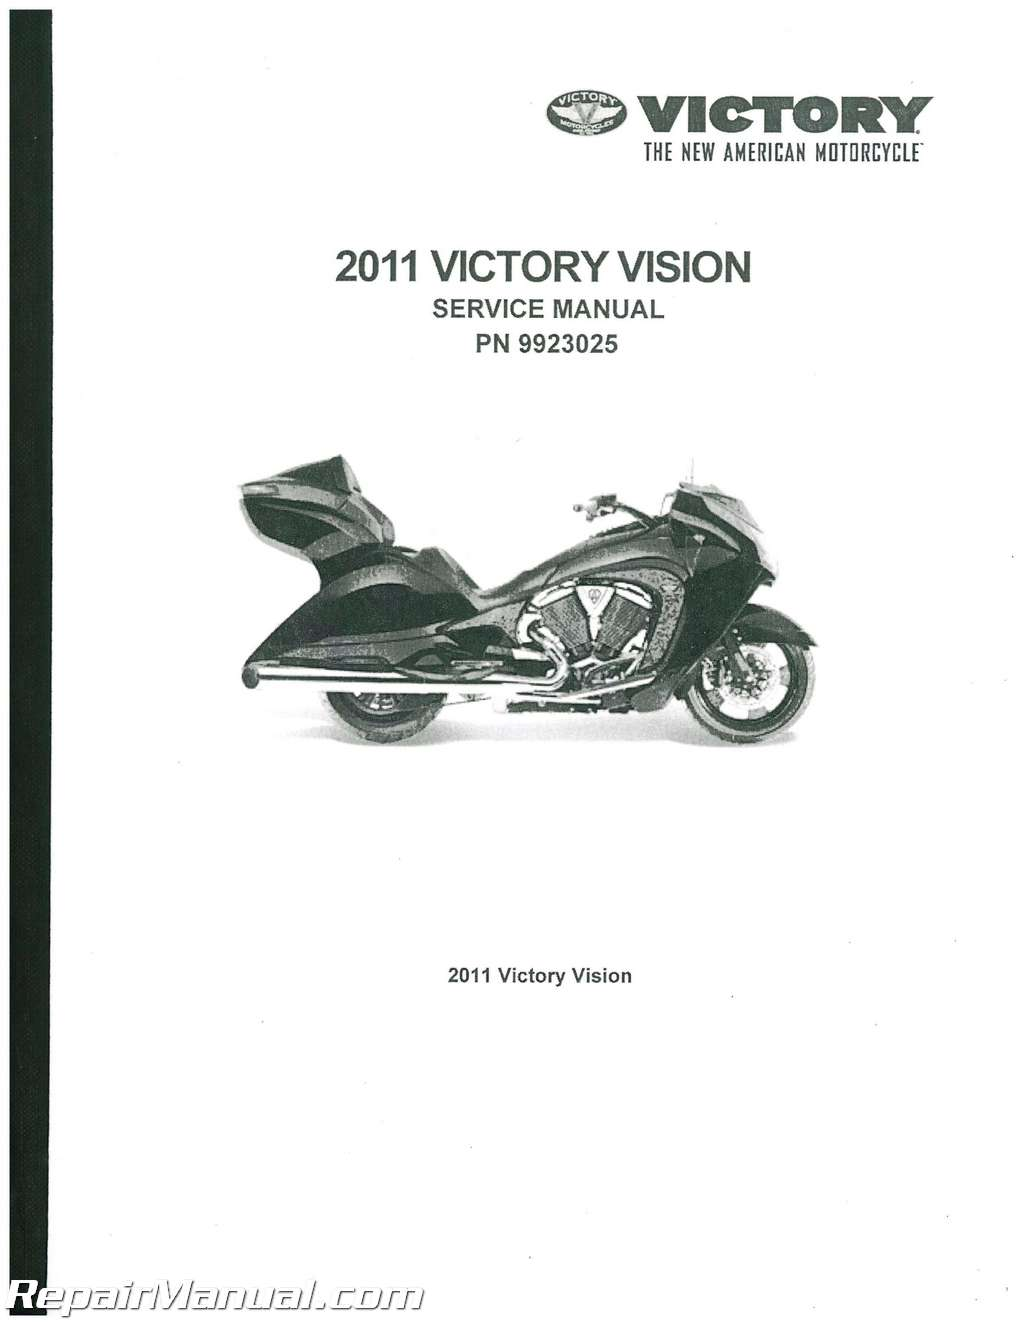 2011 Victory Vision Tour Service Manual on